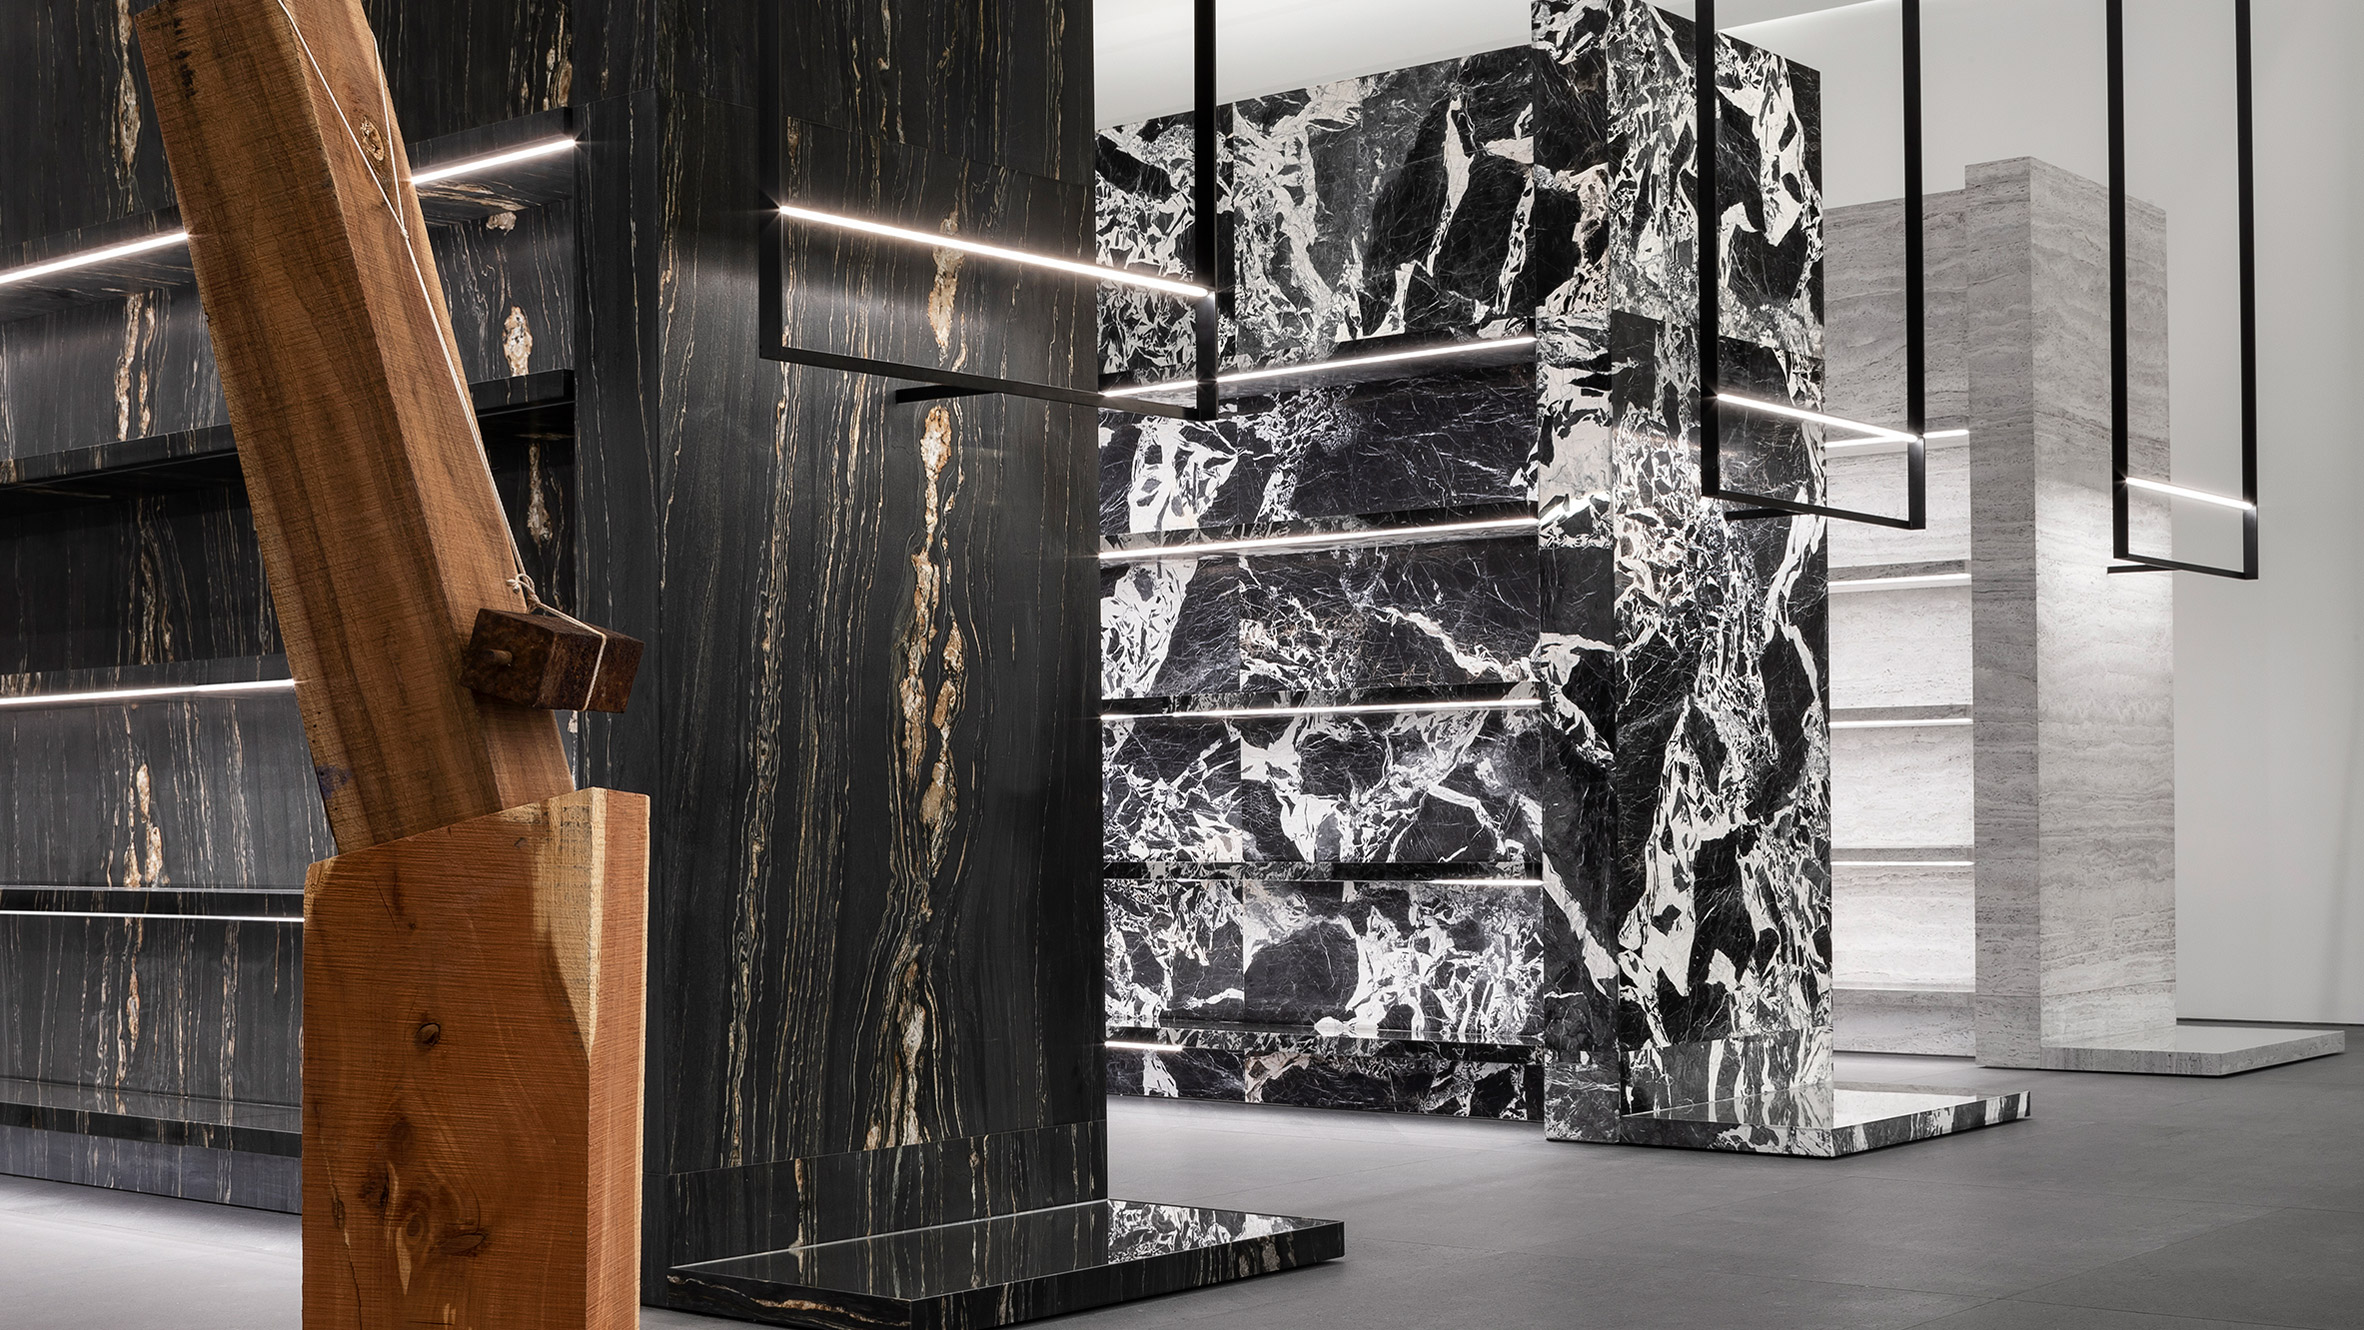 Hedi Slimane carries out interior revamp of global Celine stores